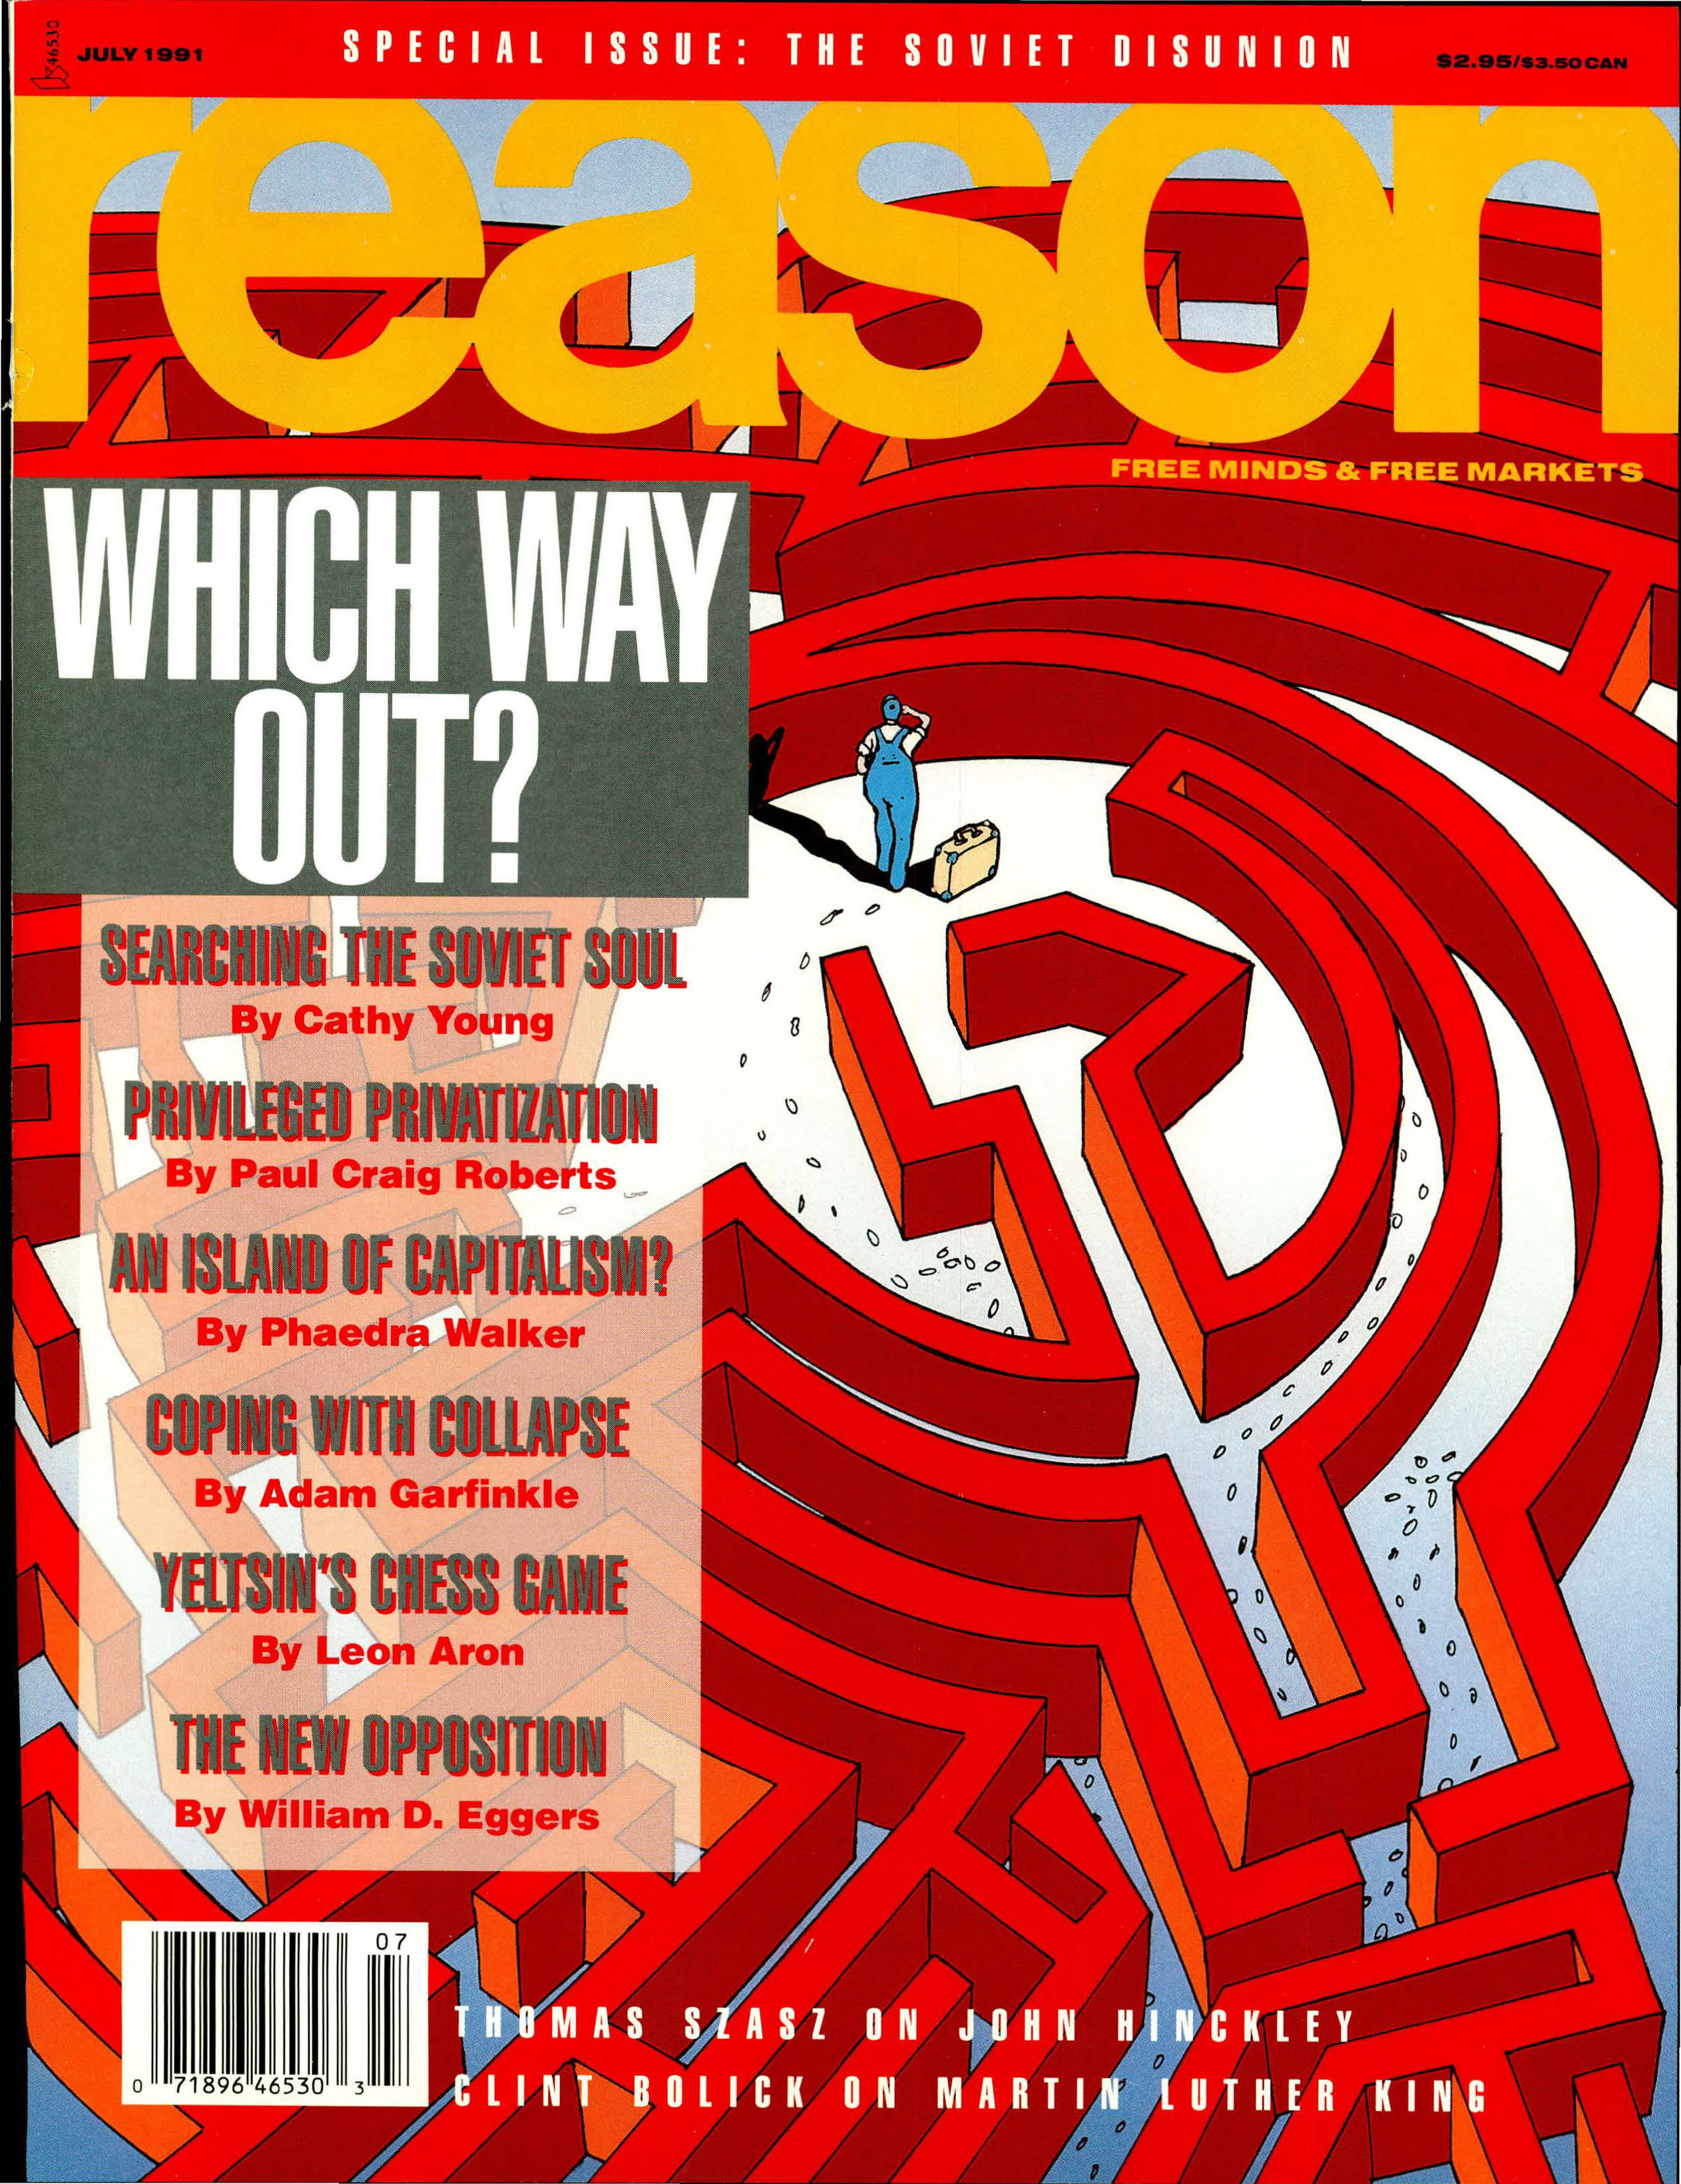 Reason Magazine, July 1991 cover image